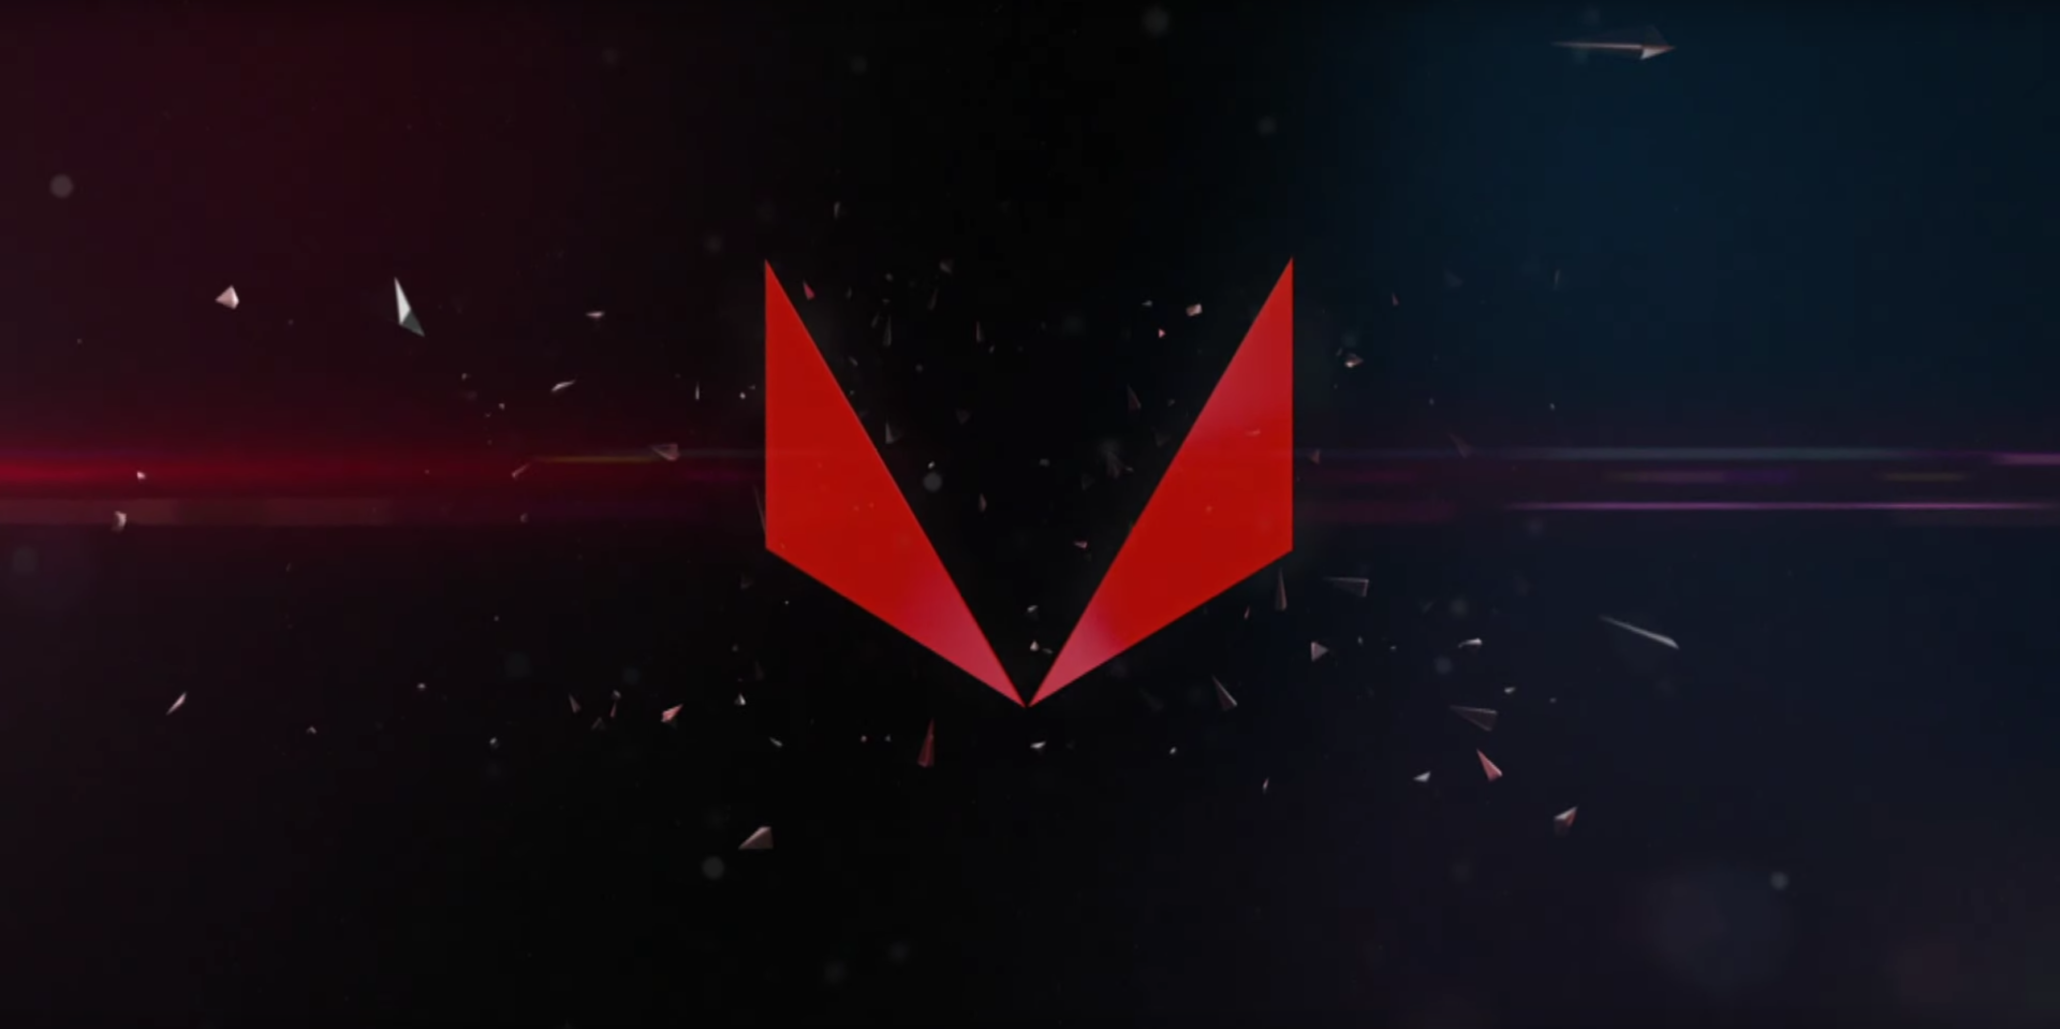 amd radeon rx vega gpu architecture and brand new features